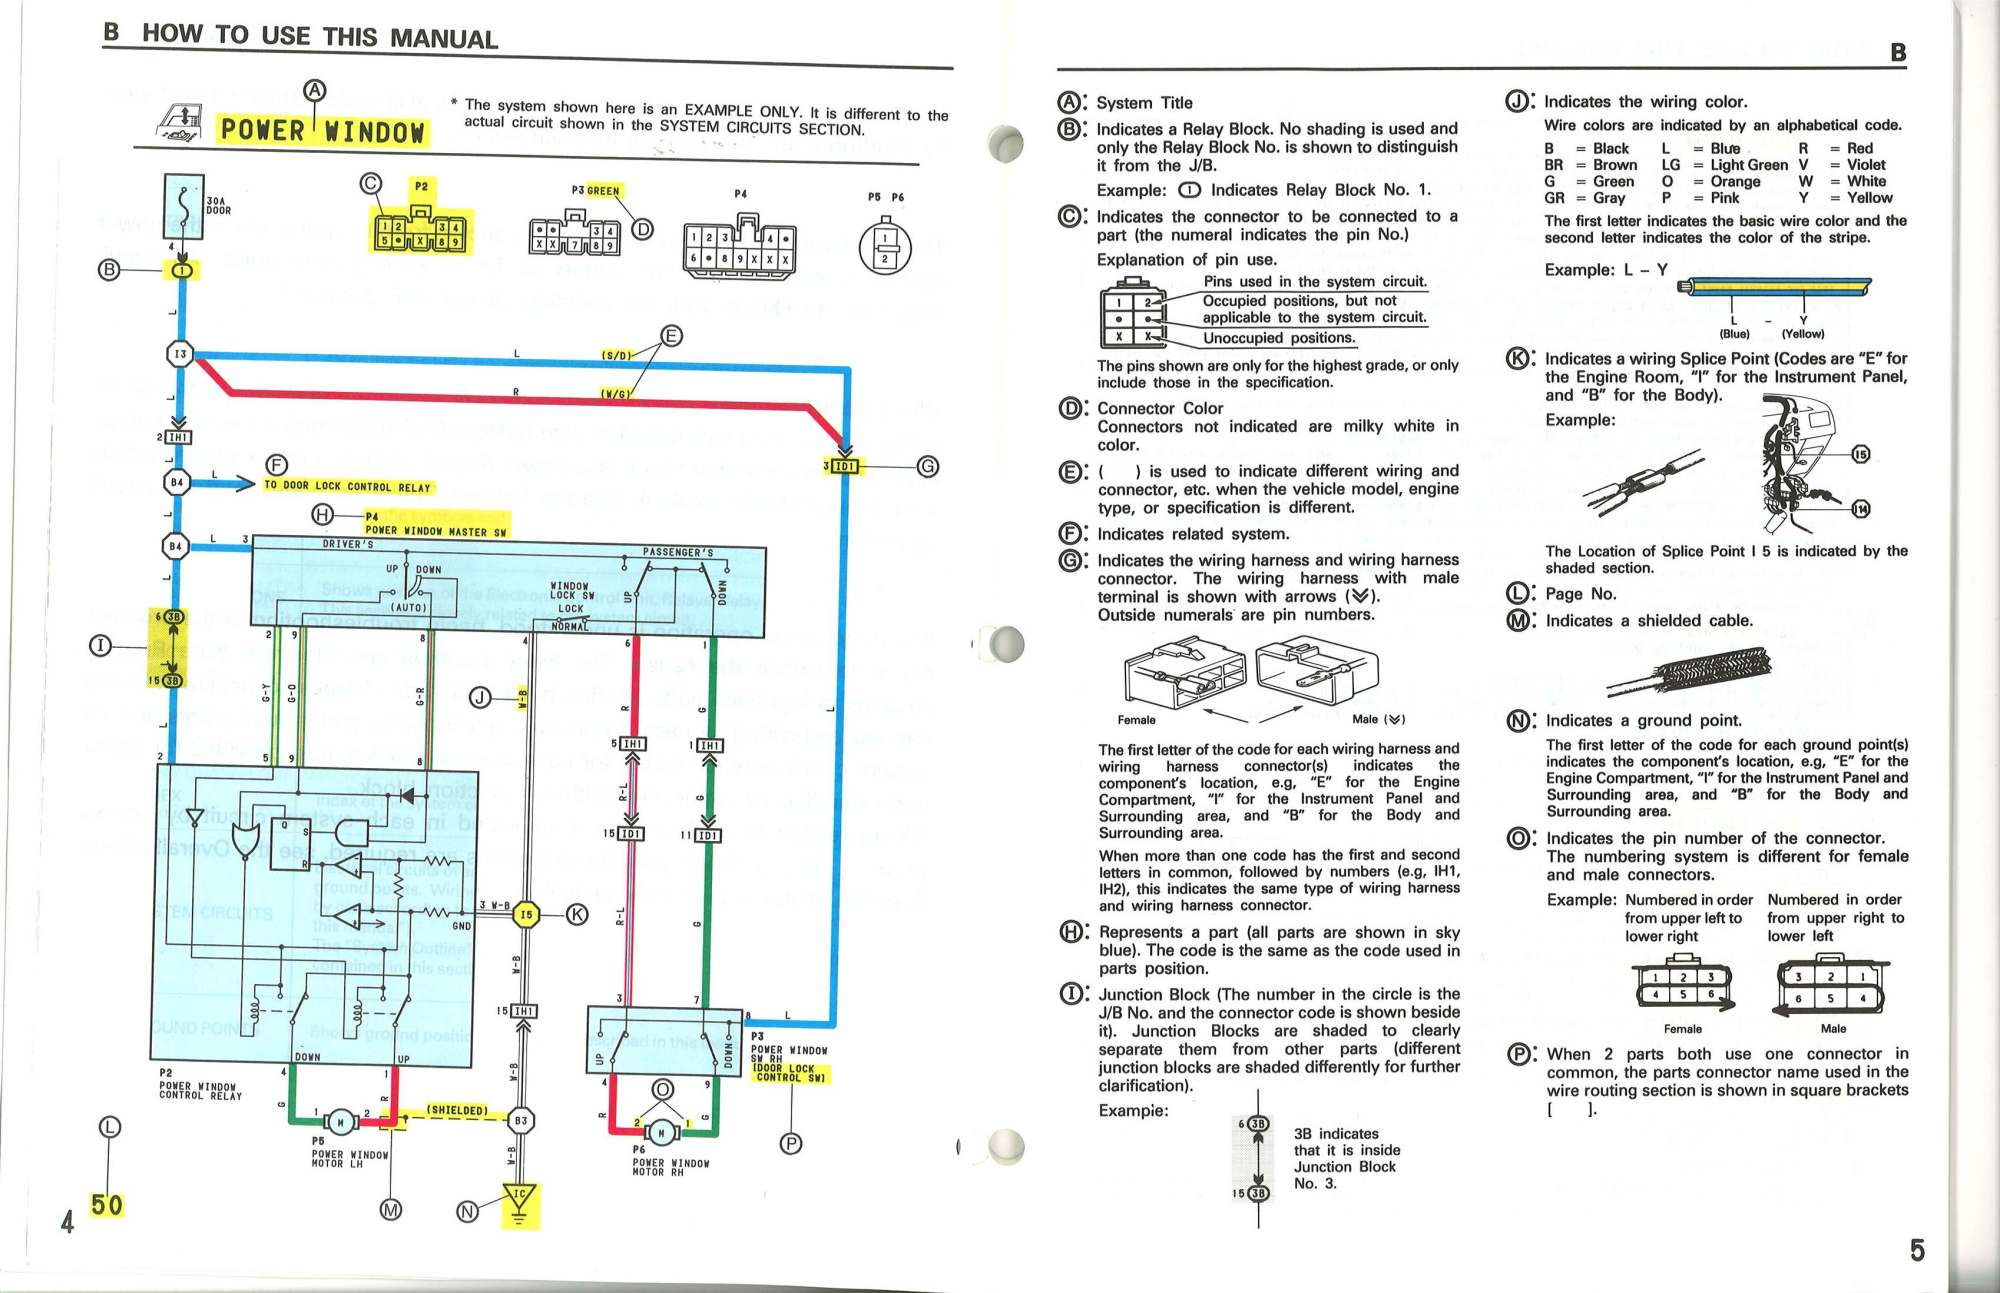 hight resolution of toyota 3vze starter relay wiring diagram schematic diagramtoyota 3vze starter relay wiring diagram wiring library 1992